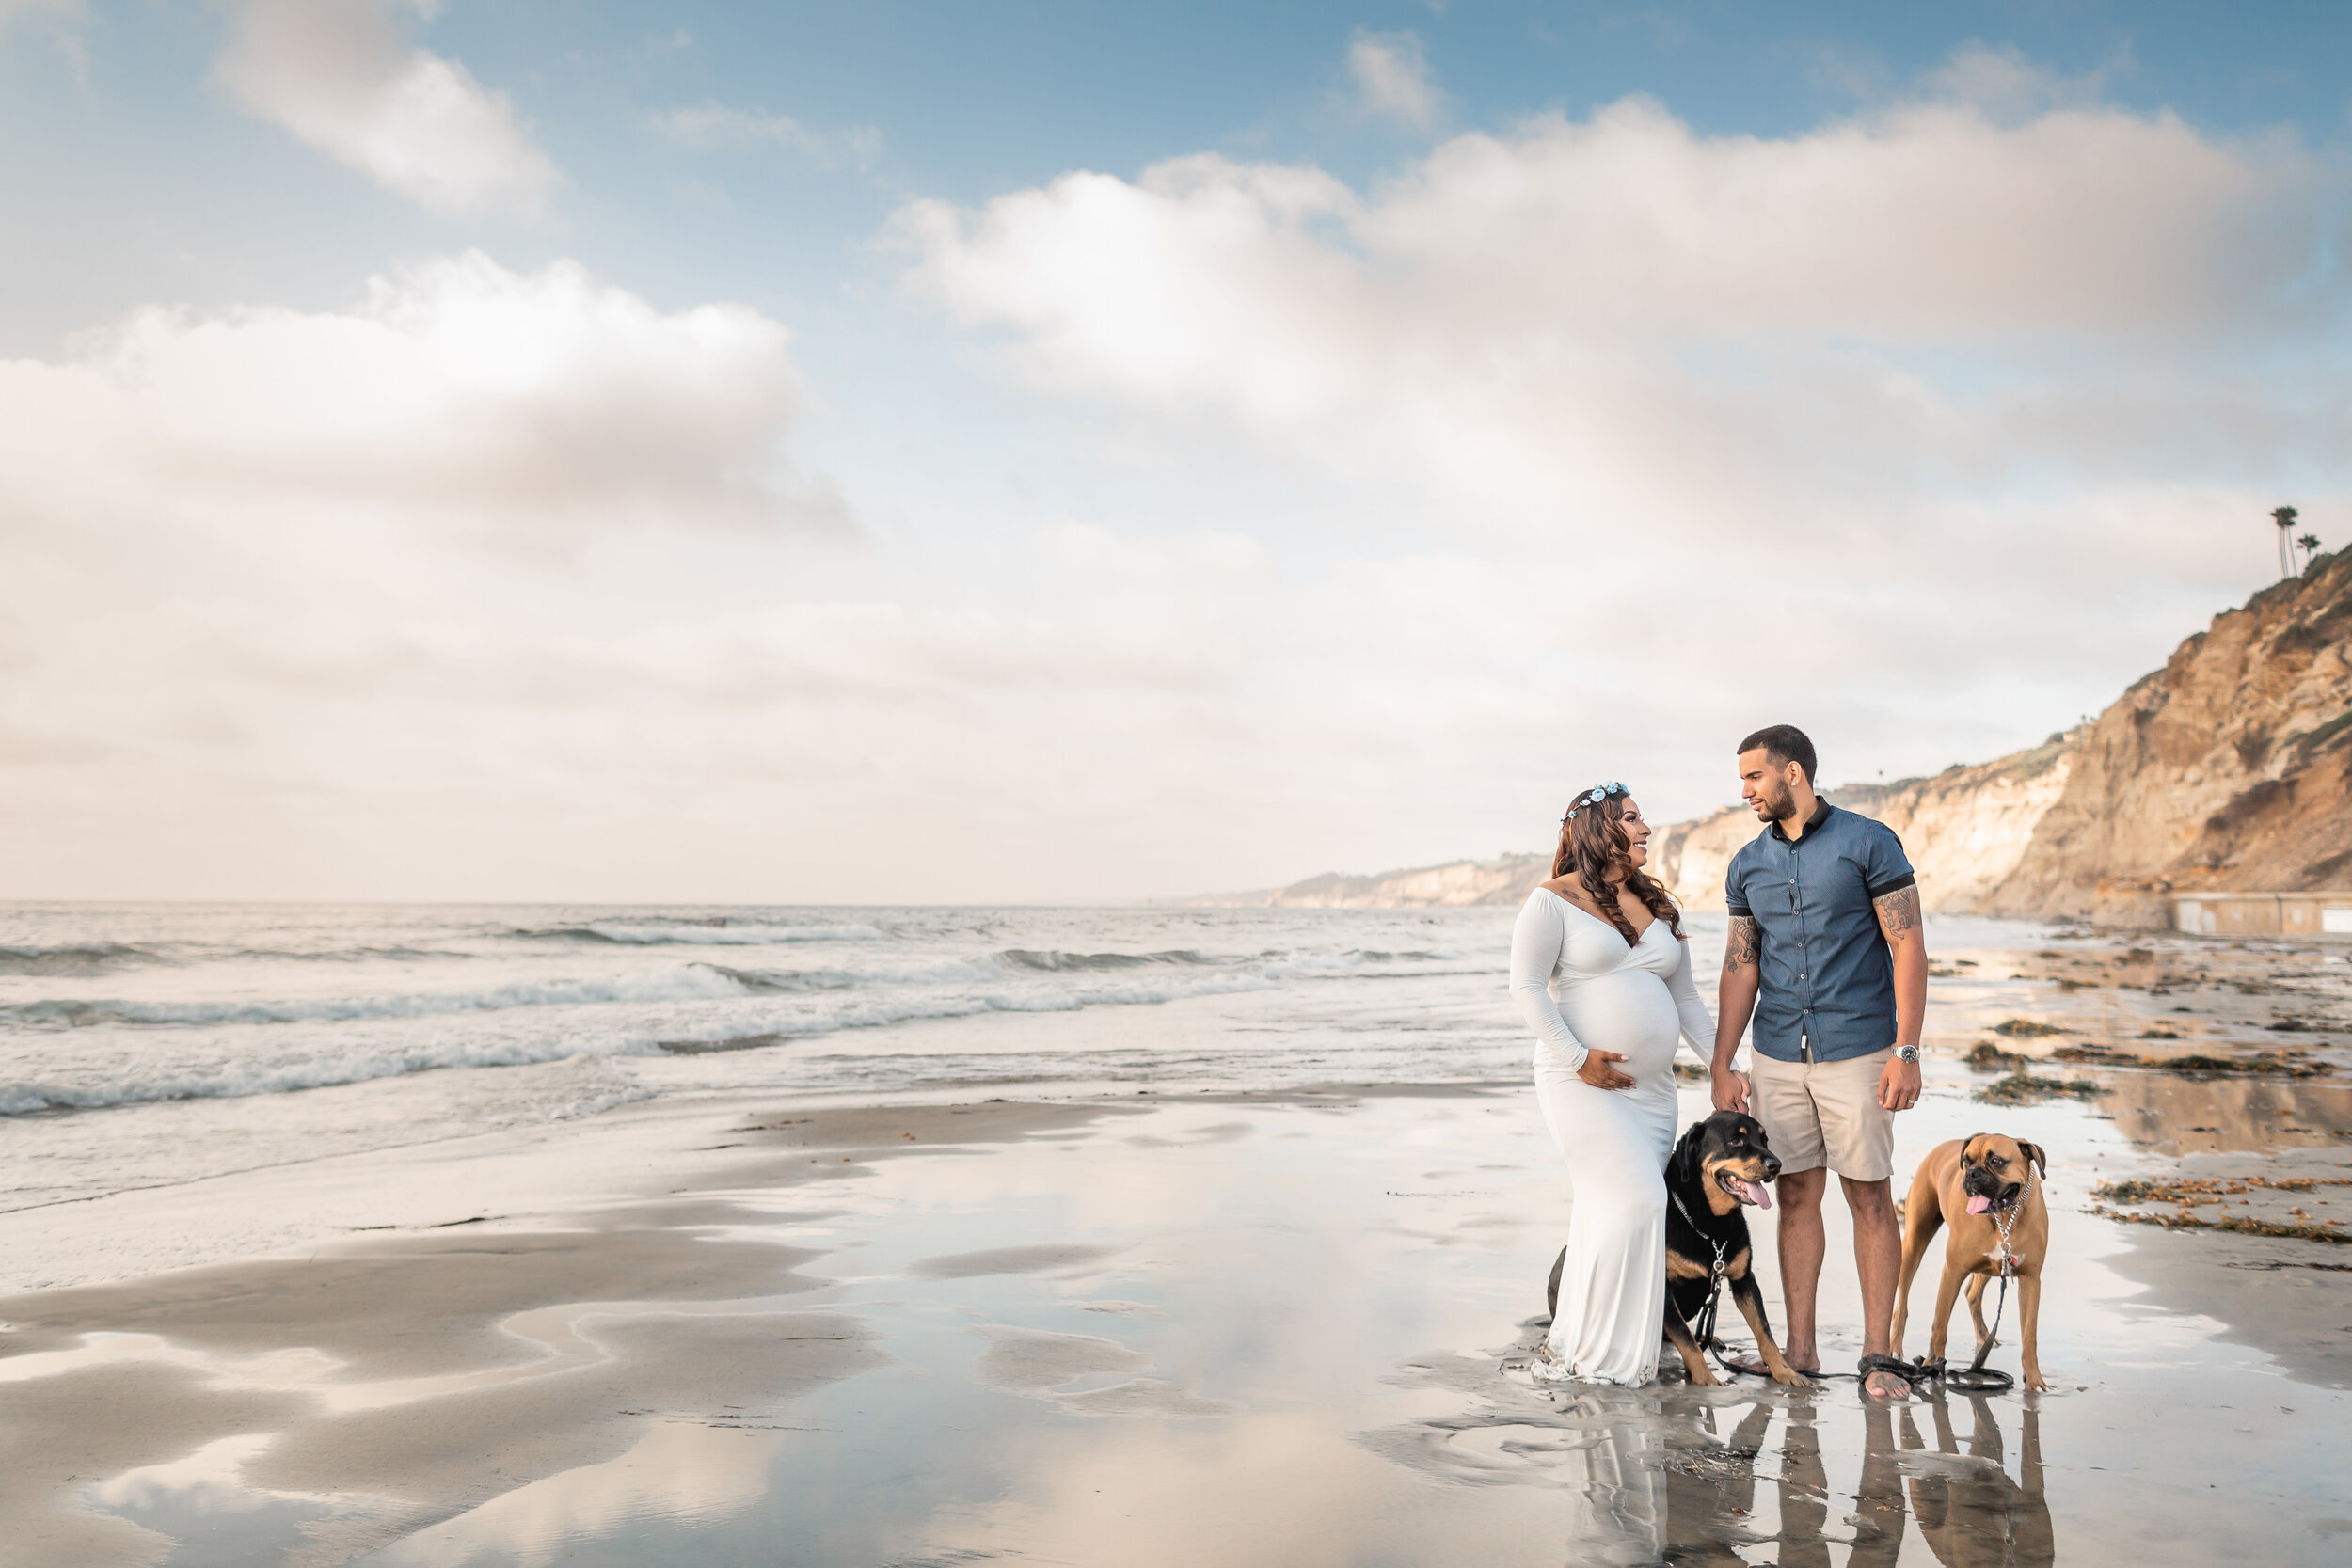 La Jolla Shores Beach Maternity Session with Dogs